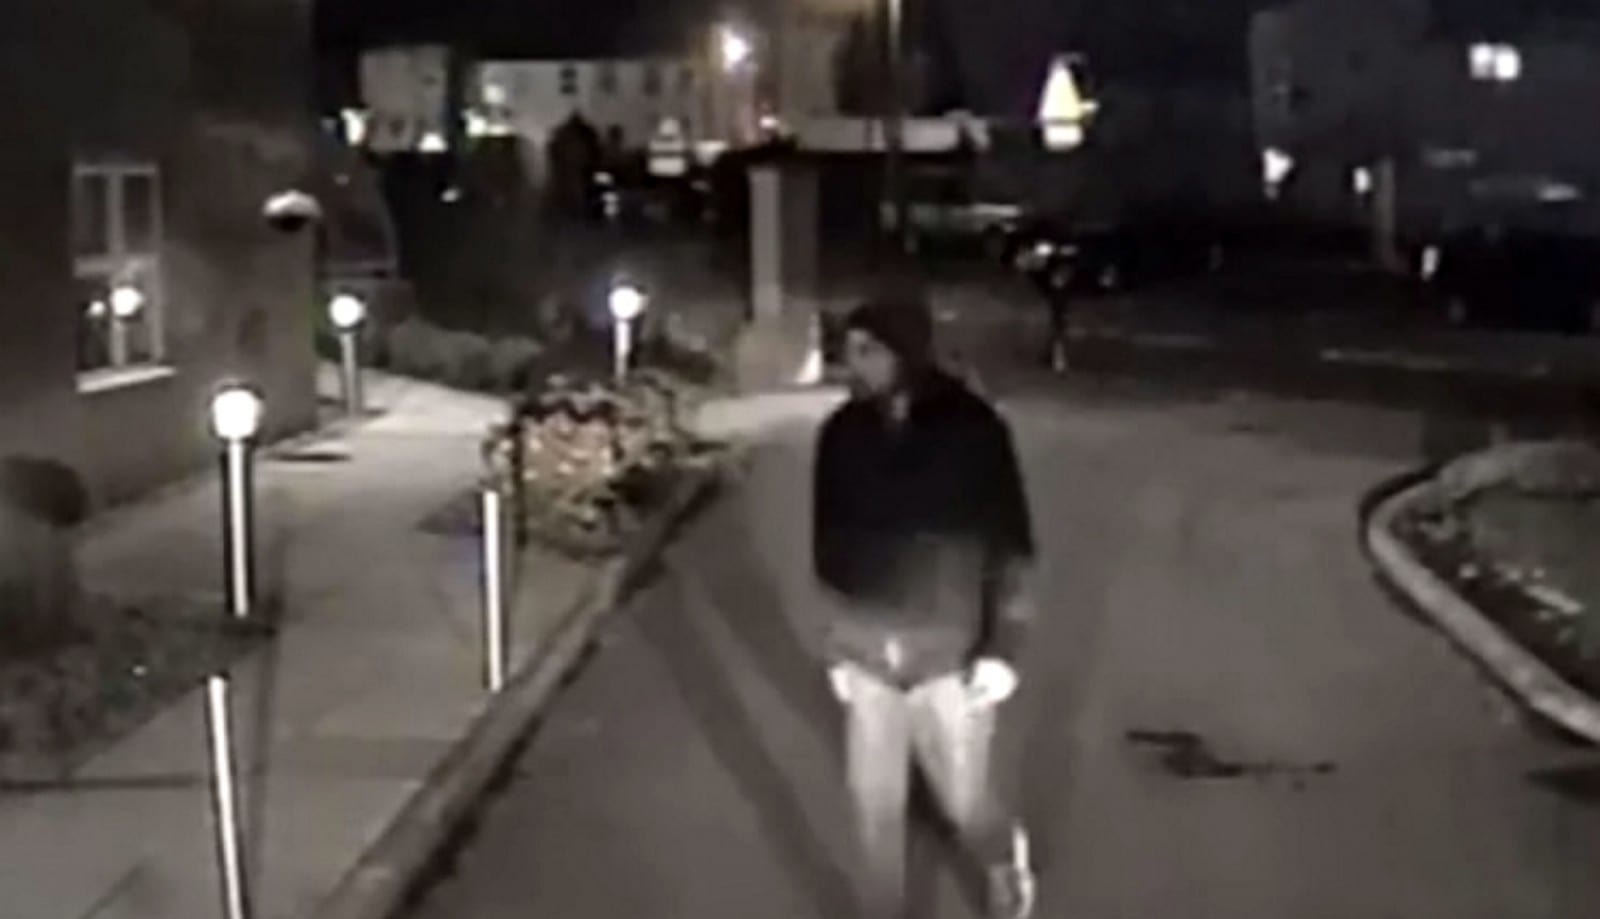 Shocking CCTV Footage Shows Moment Thief Breaks Into Ambulance As Paramedics Treat Patient Nearby